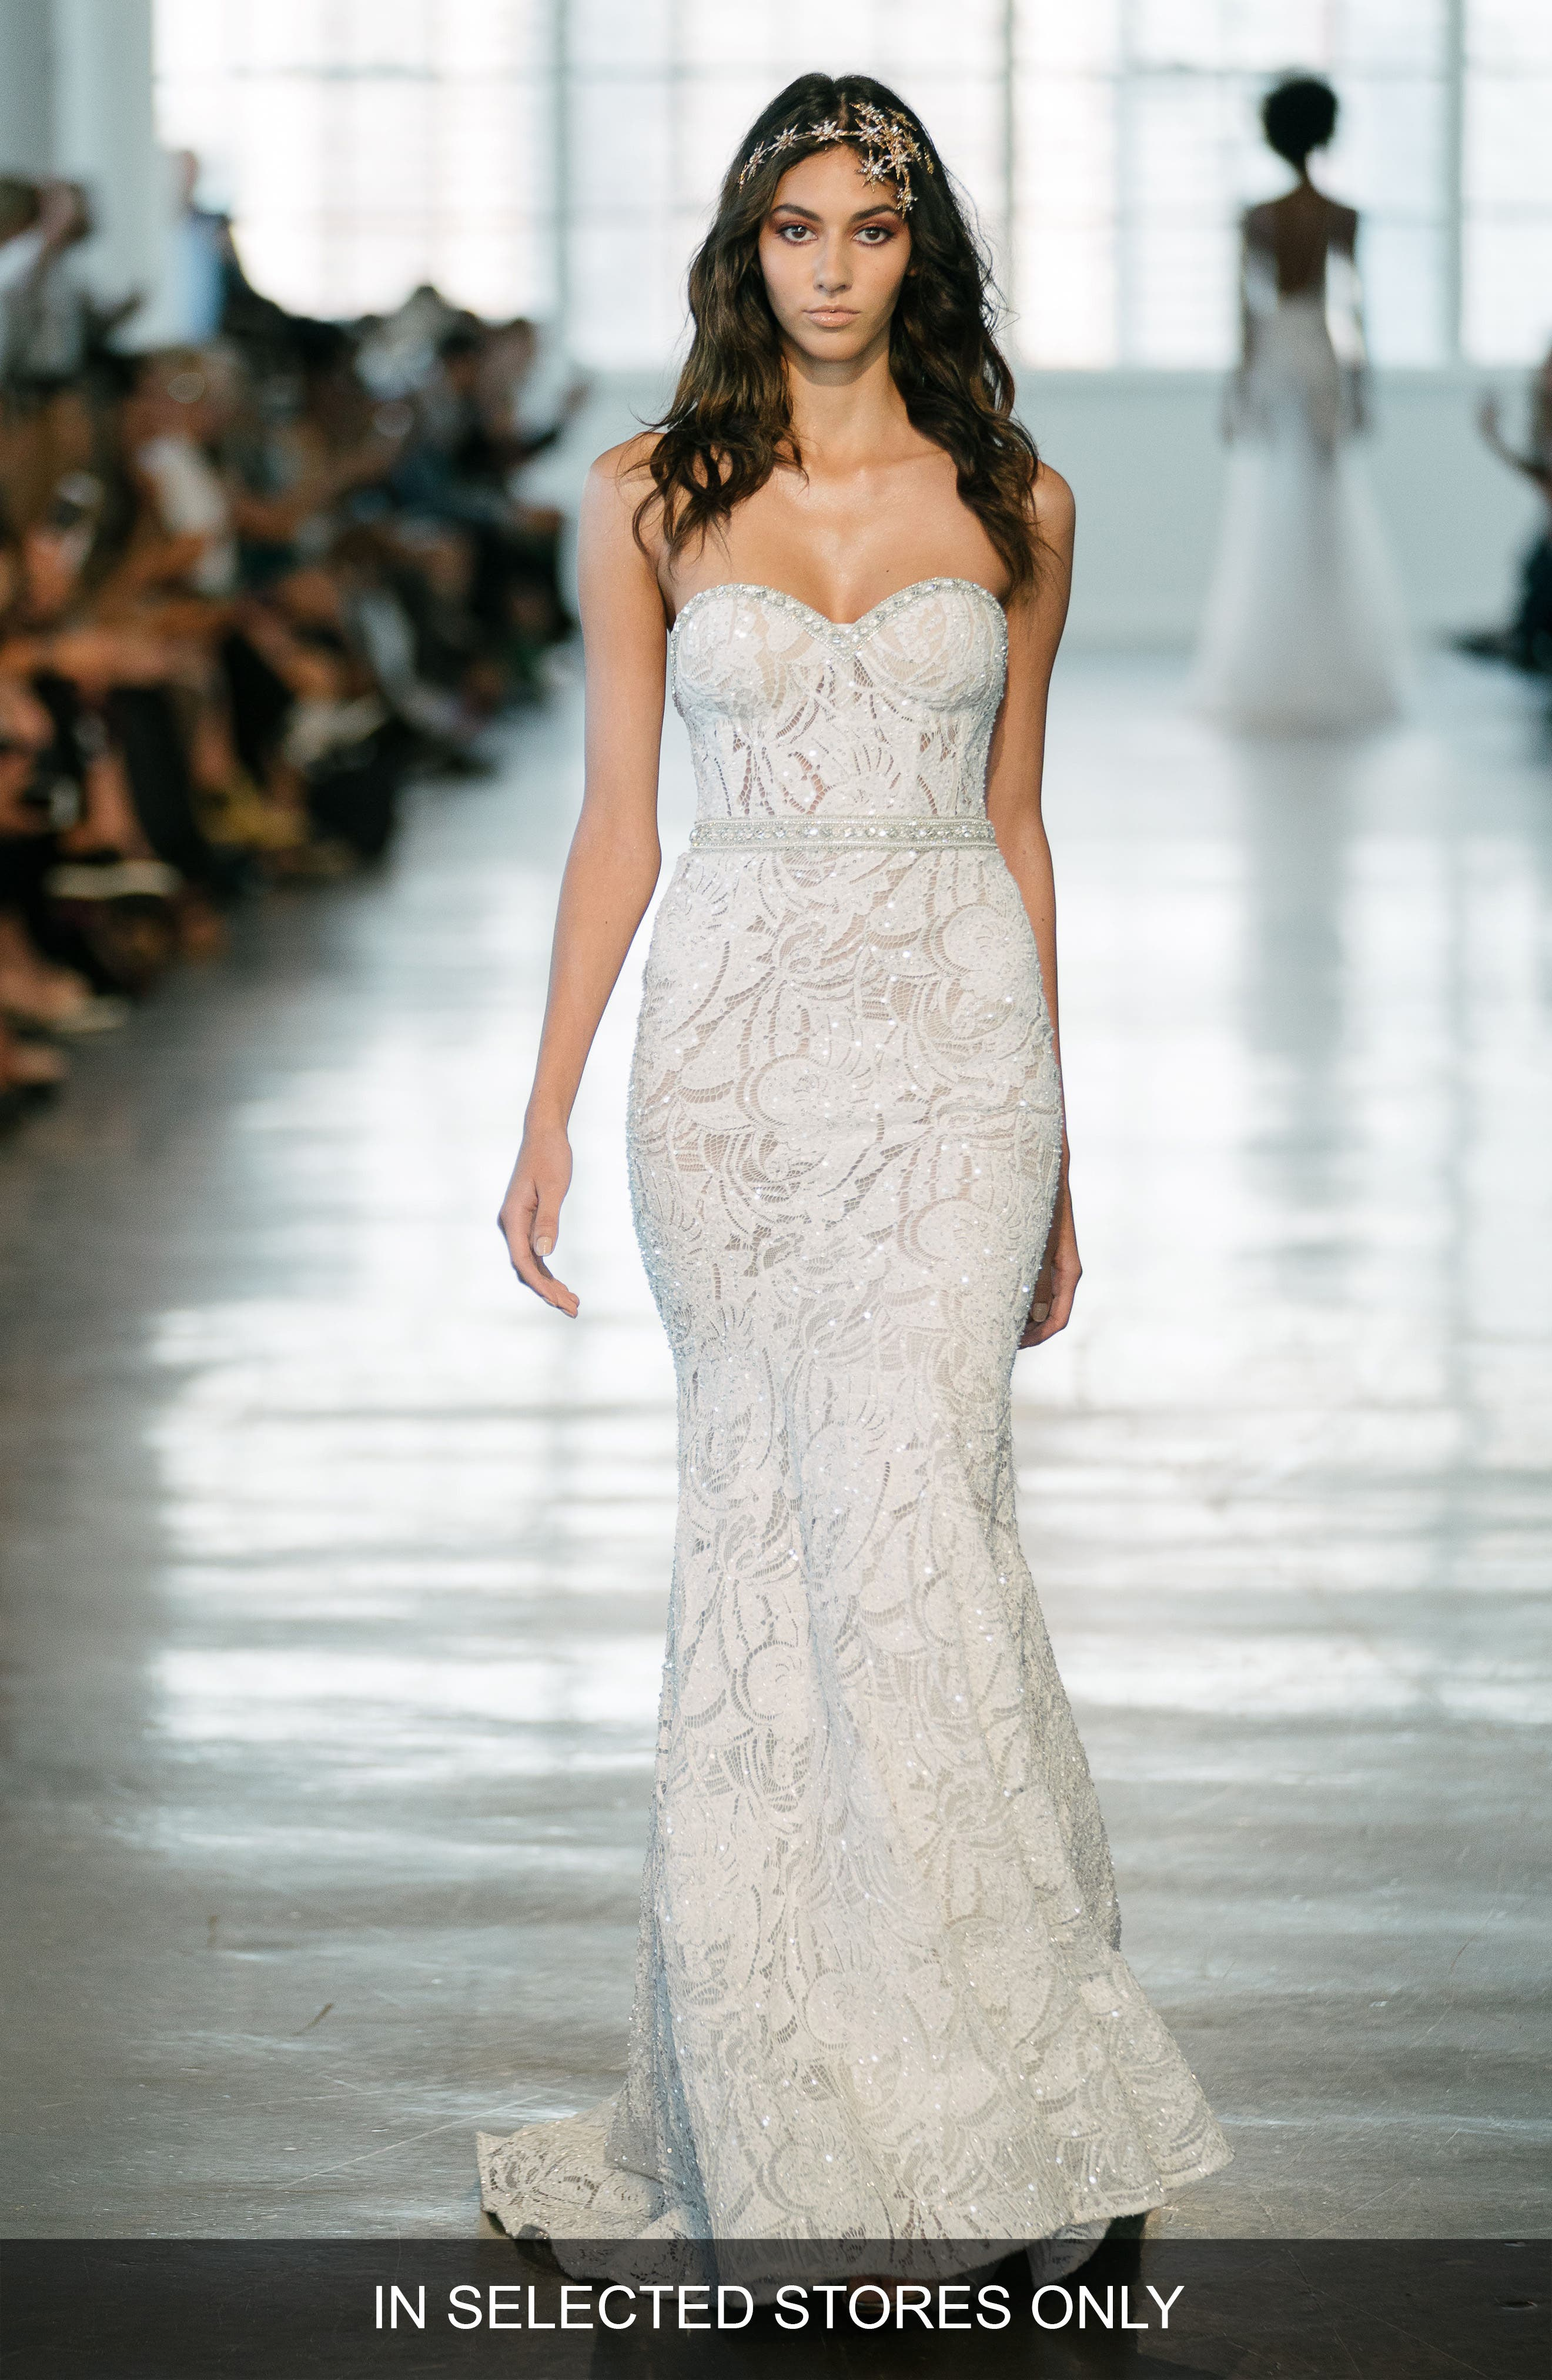 Alternate Image 1 Selected - Berta Crystal Embellished Strapless Lace Trumpet Gown